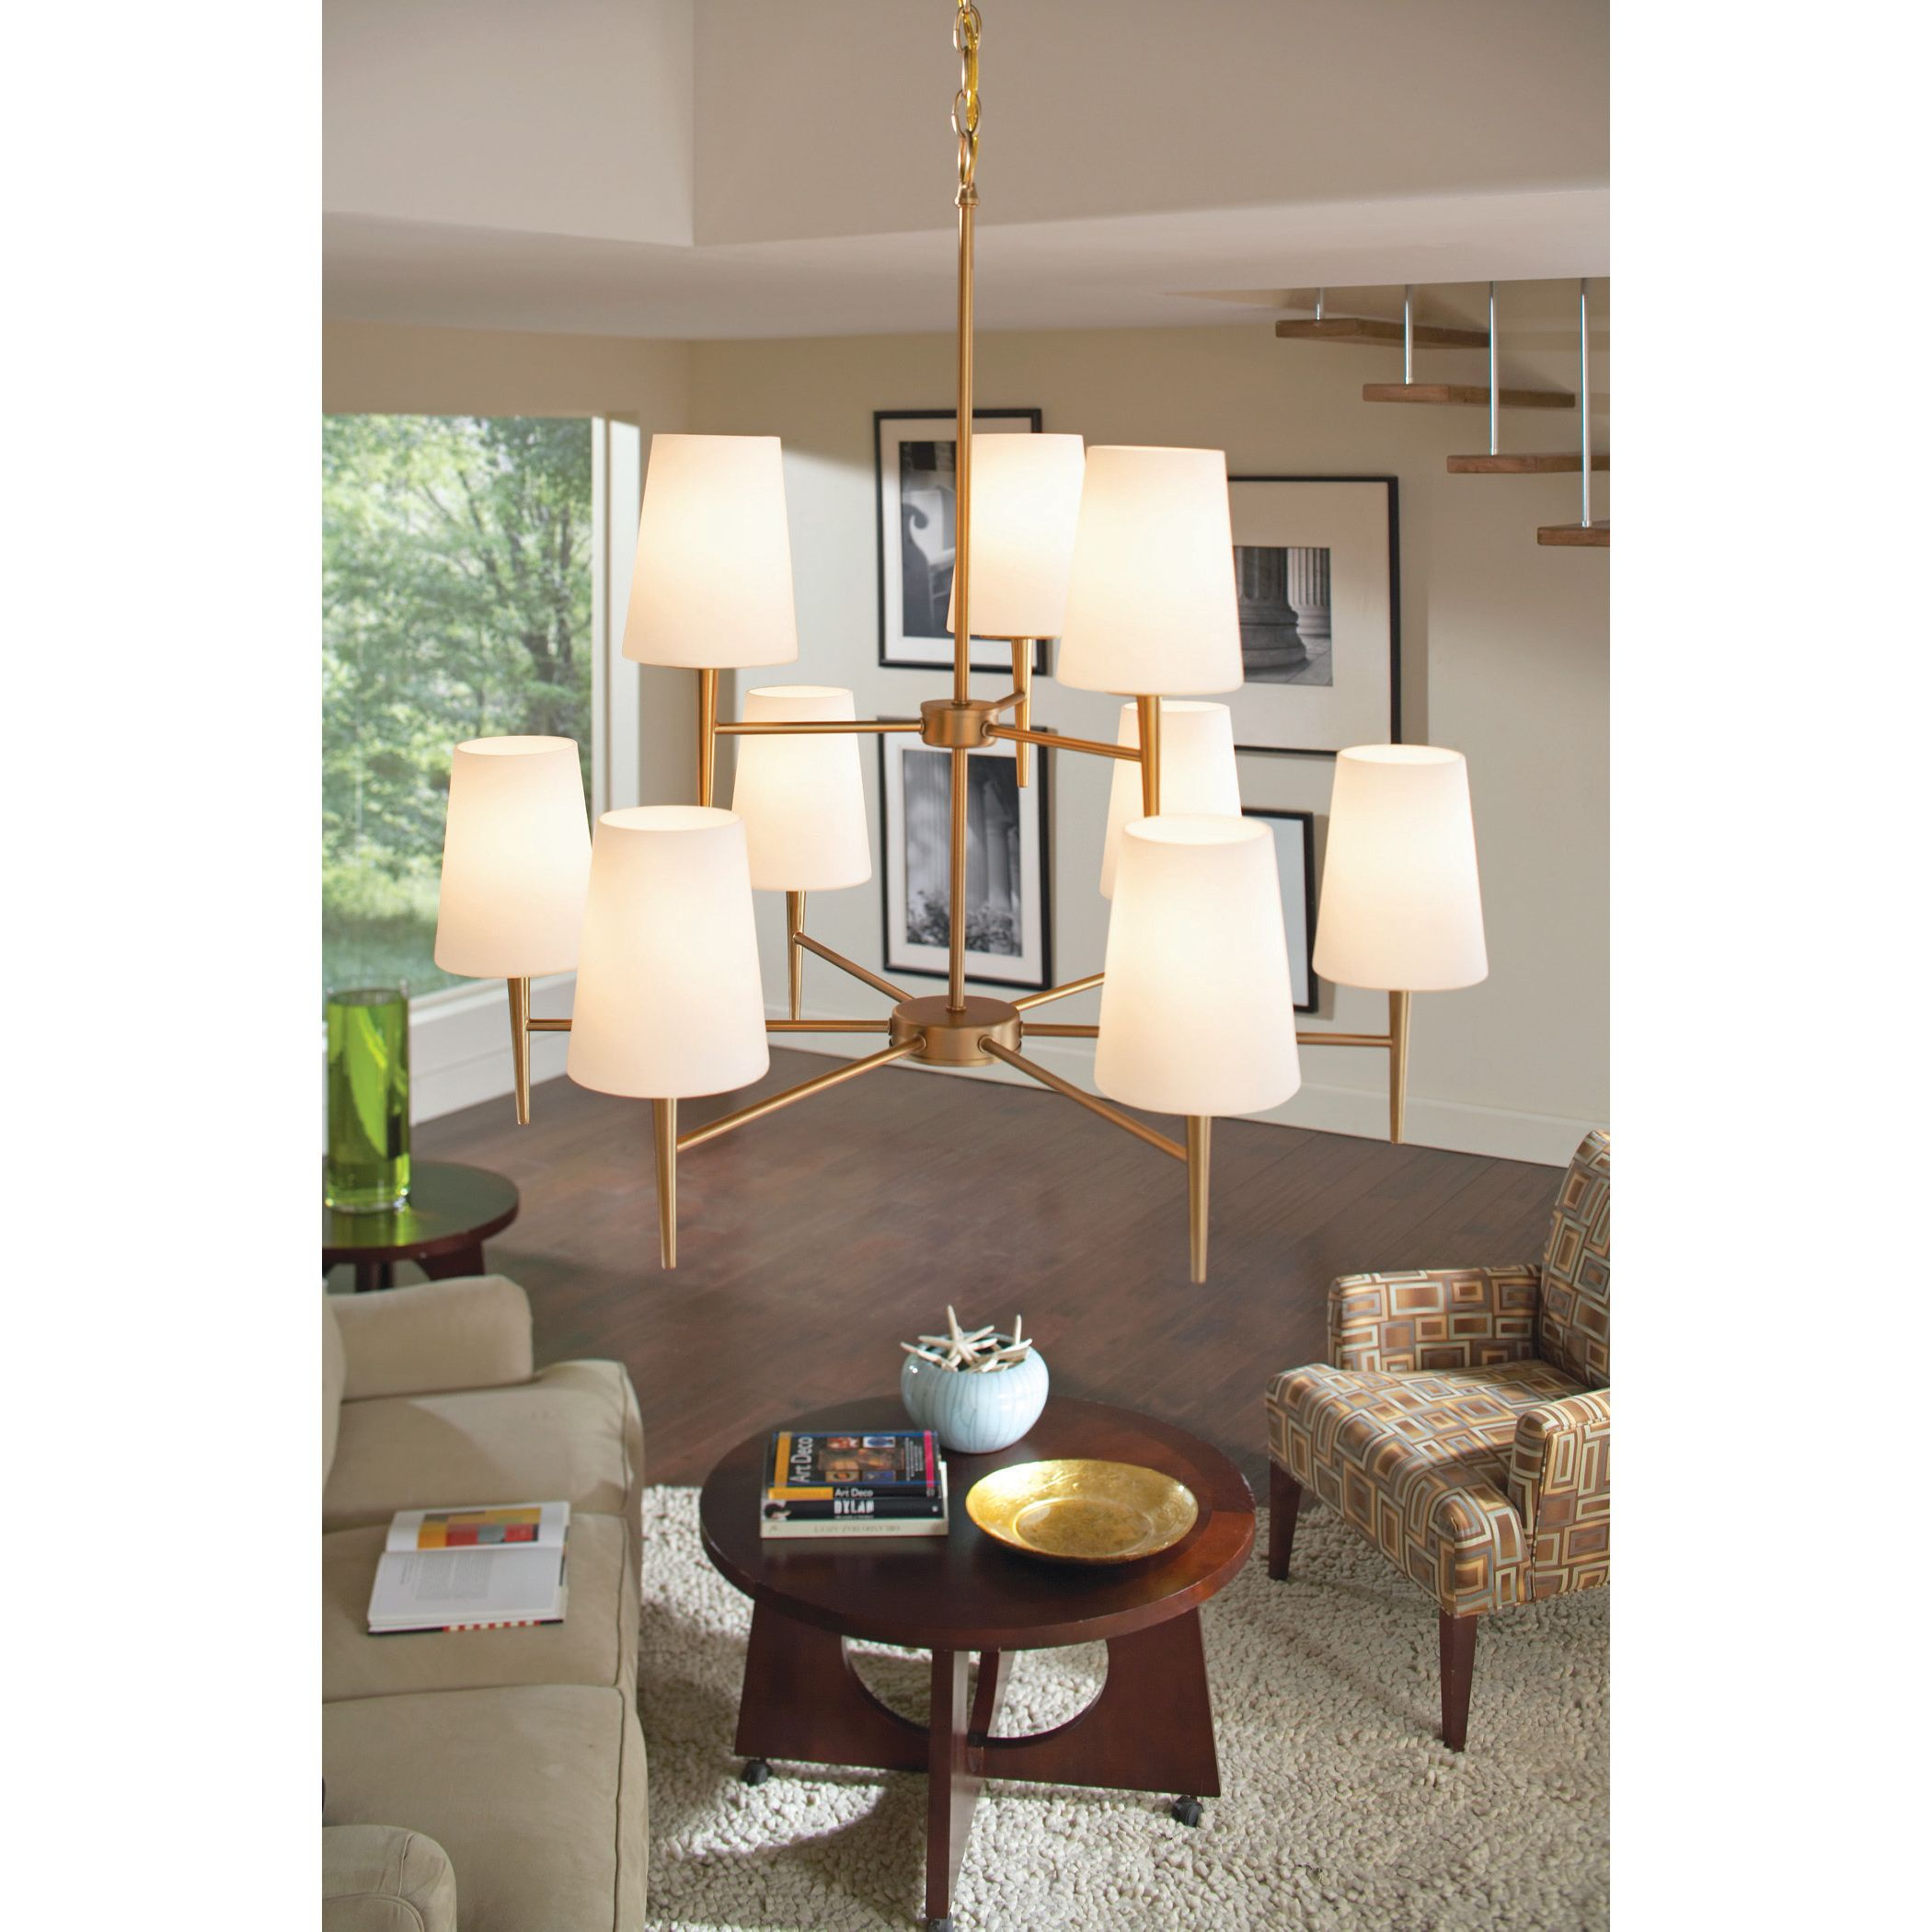 With a clean design and classic style this driscoll chandelier